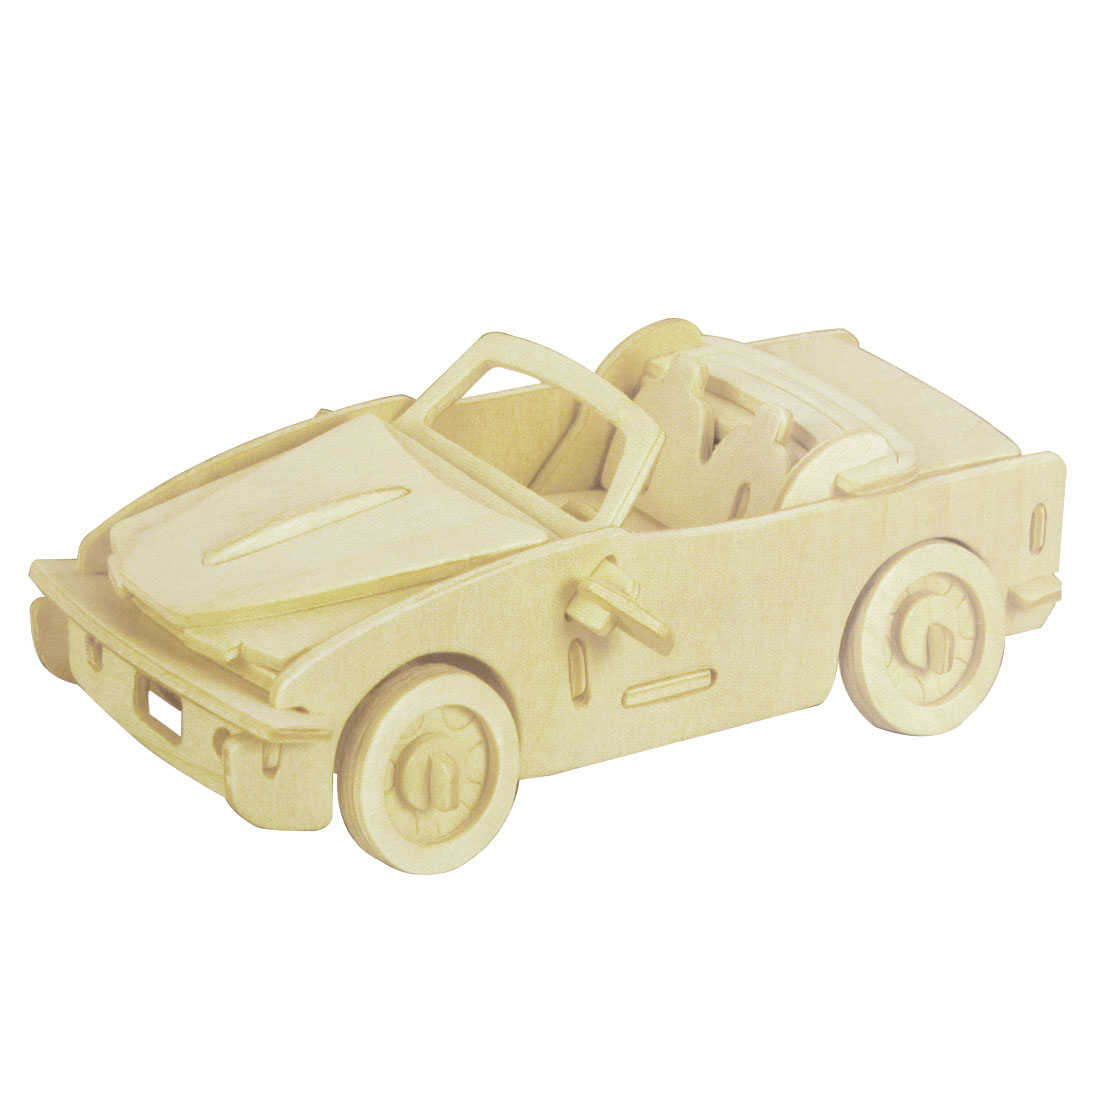 3D Wooden Puzzle Car Model DIY Educational Toy for Child